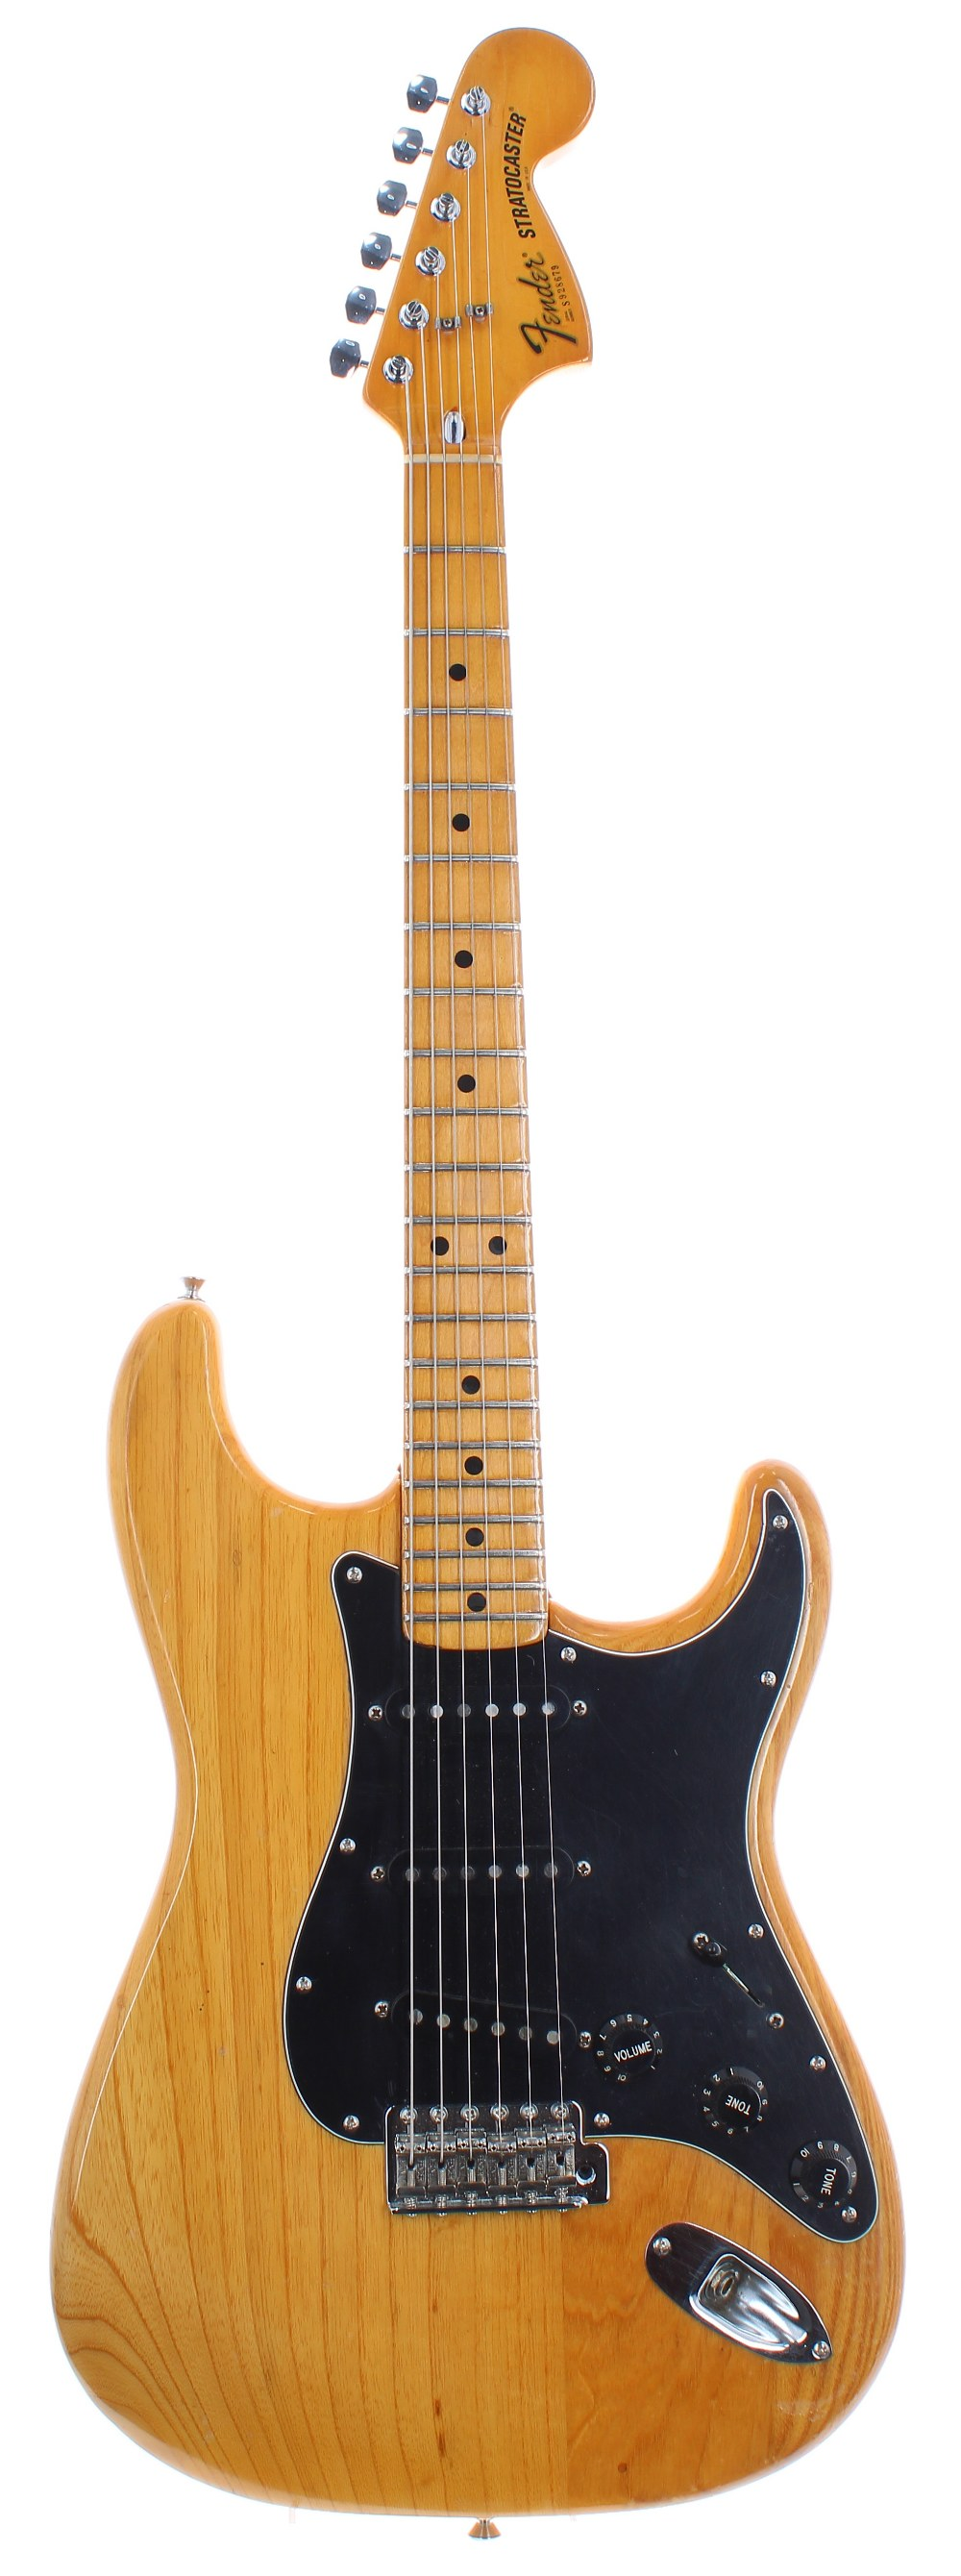 1979 Fender Stratocaster electric guitar, made in USA, ser. no. S9xxxx9; Finish: natural, minor